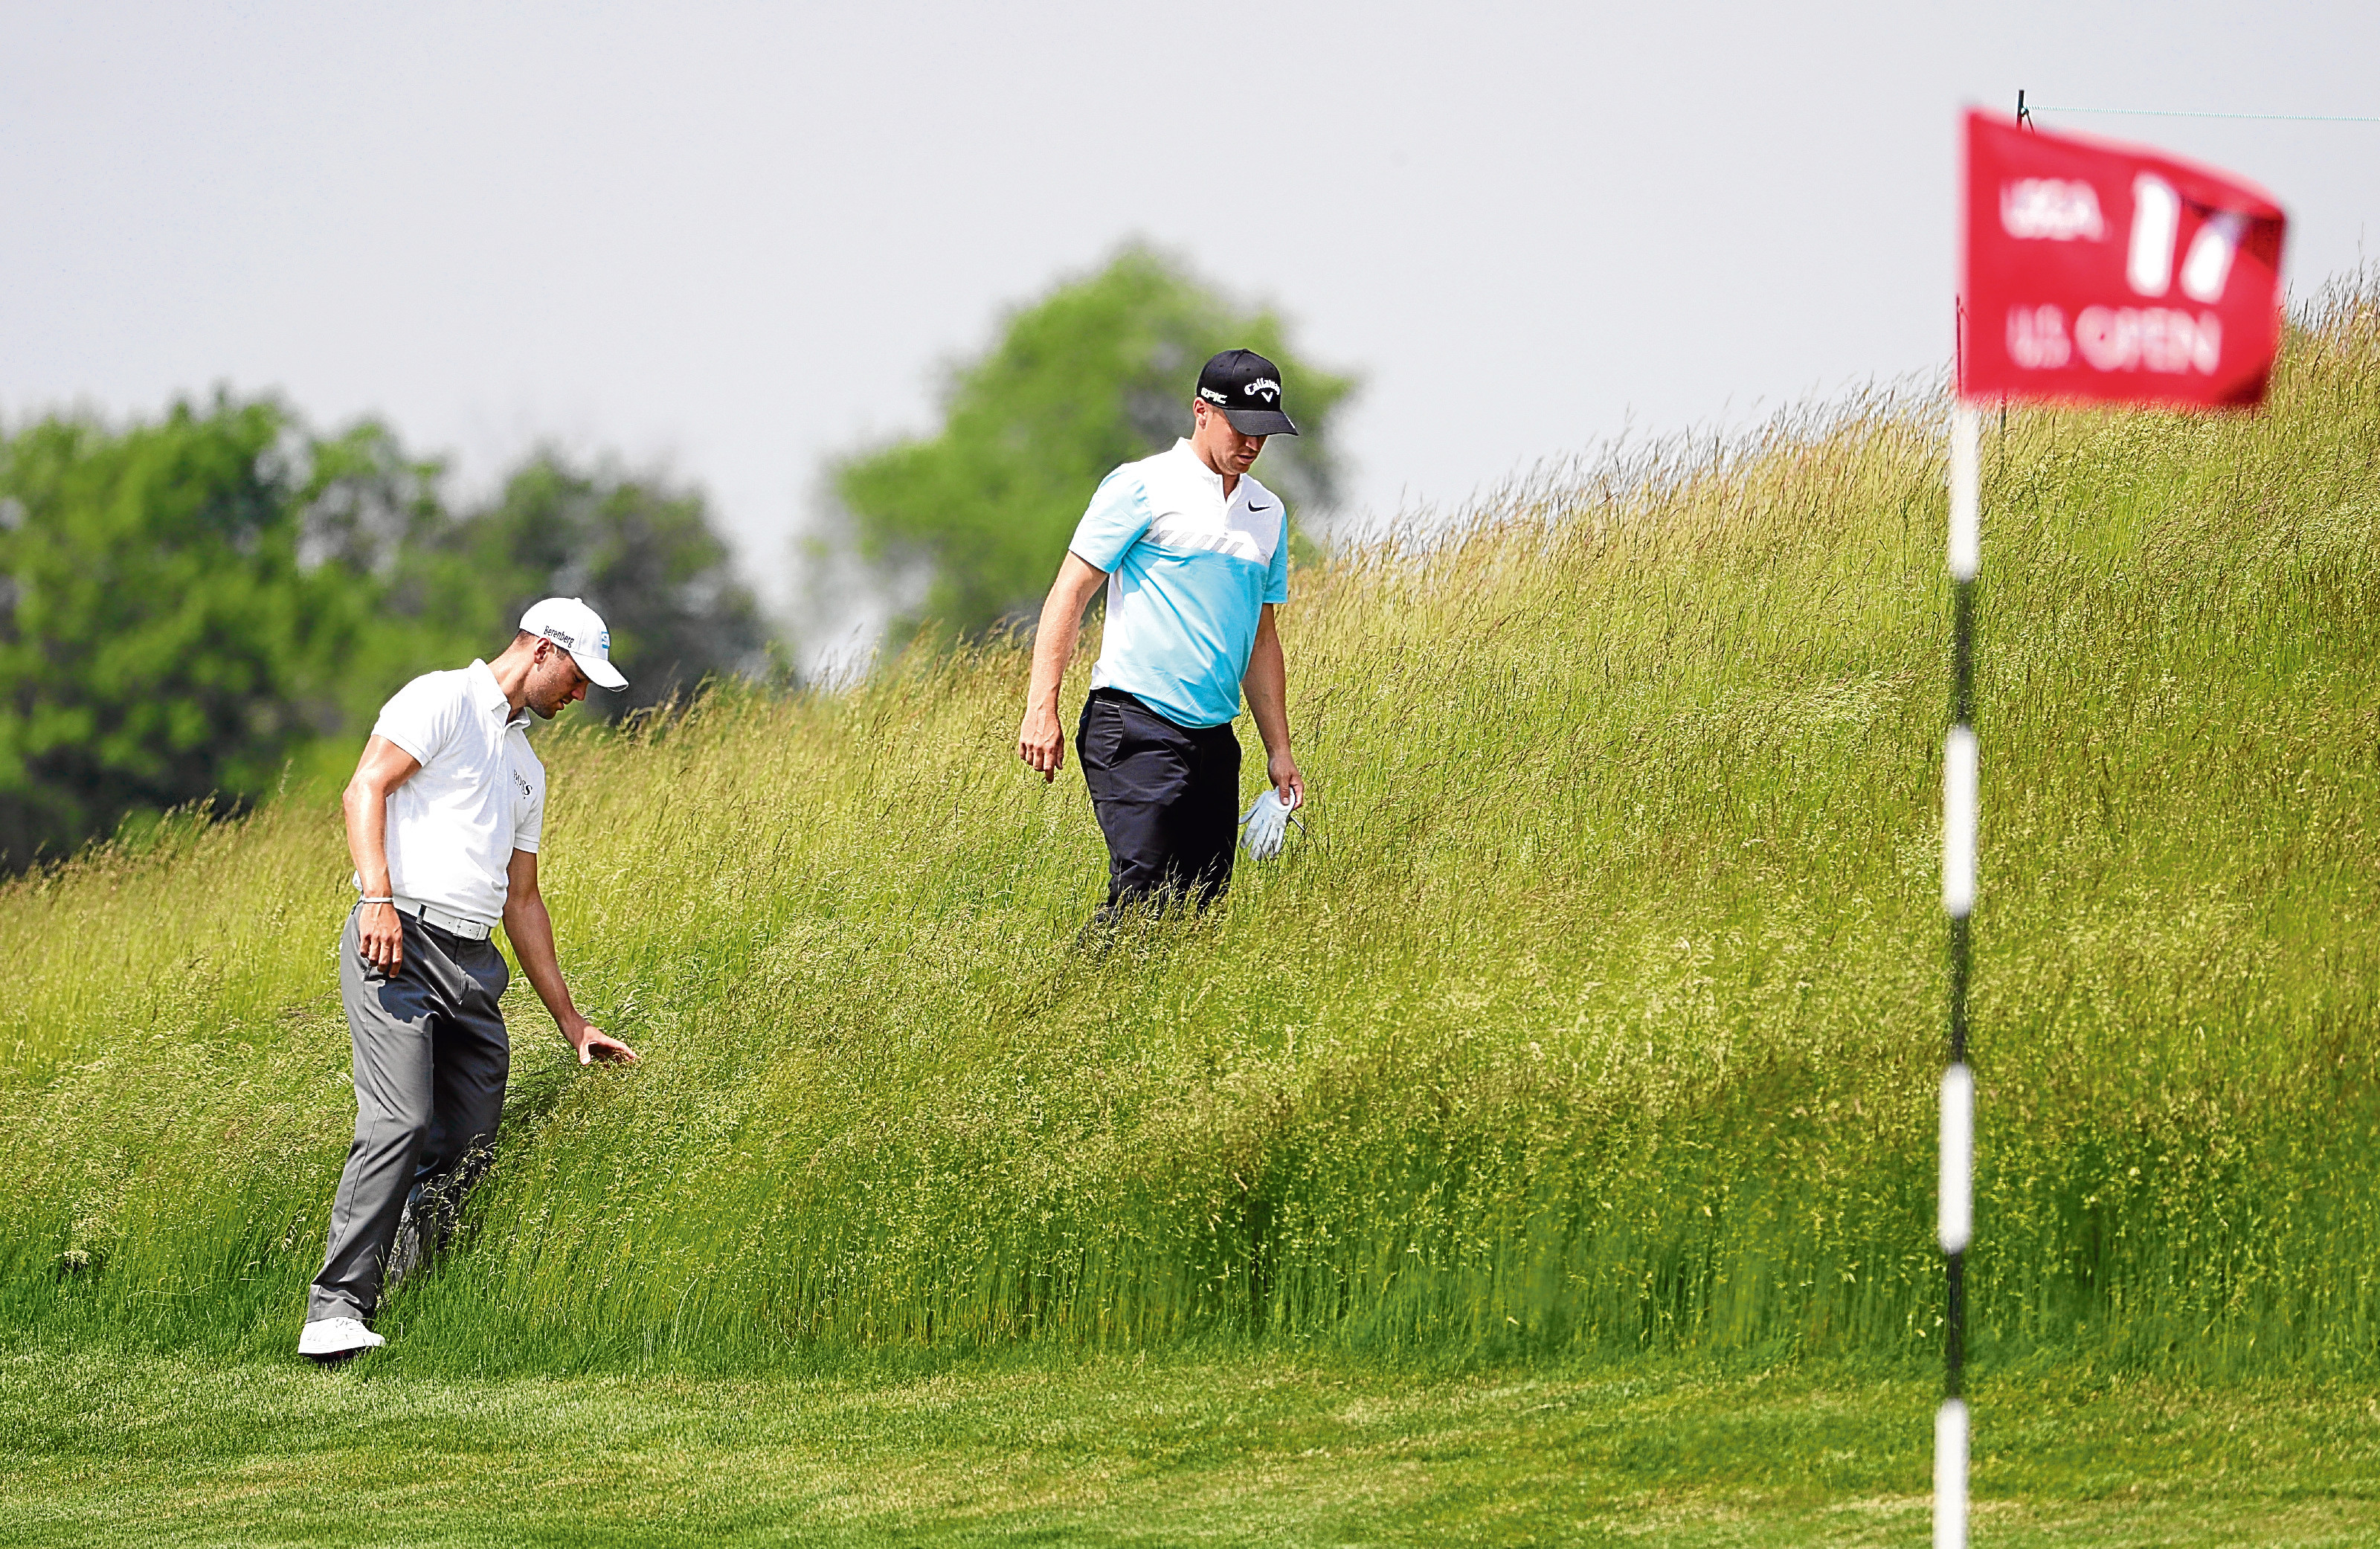 There's been a lot of talk about the rough at Erin Hills.